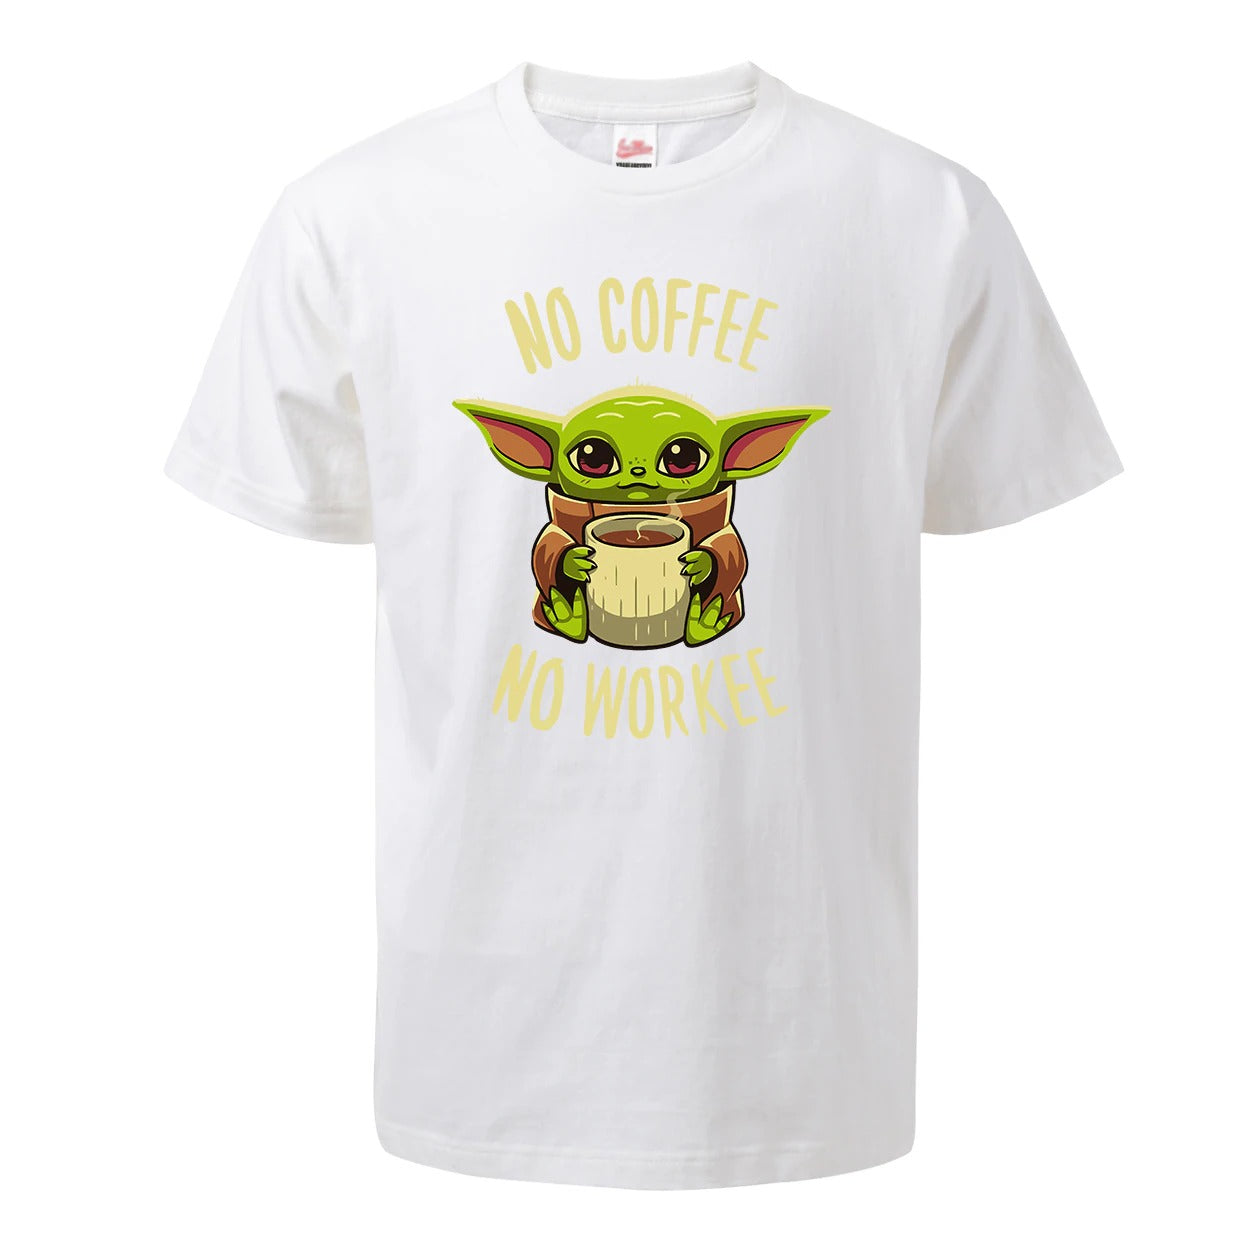 Star Wars Coffee Shirt